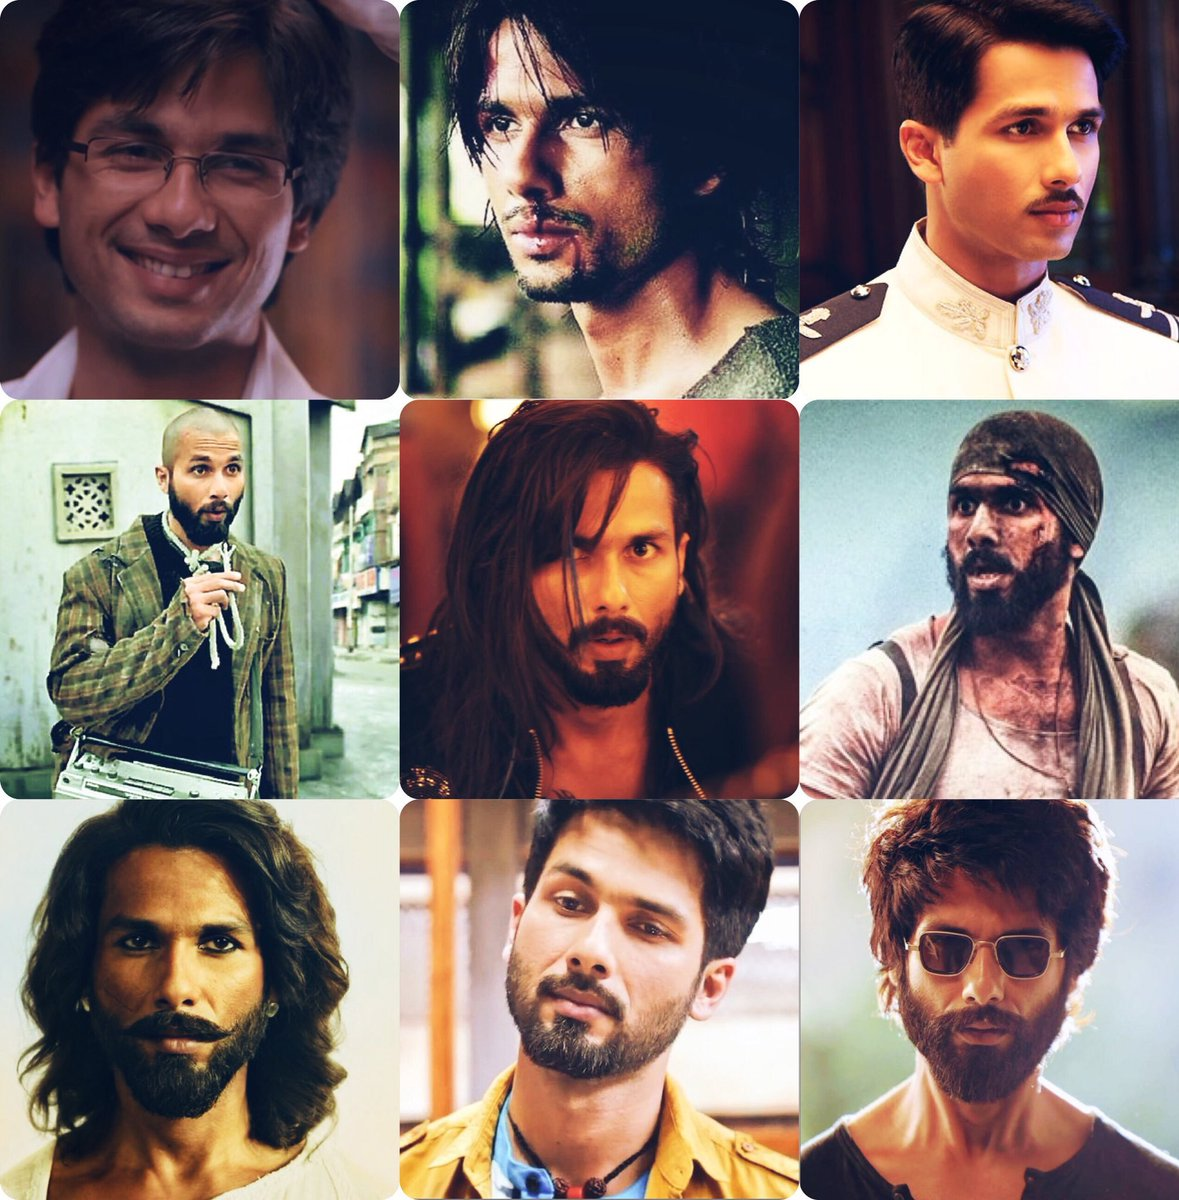 Replying to @Worships_Shahid: One Man different shades , Shahid Kapoor for you. ❤